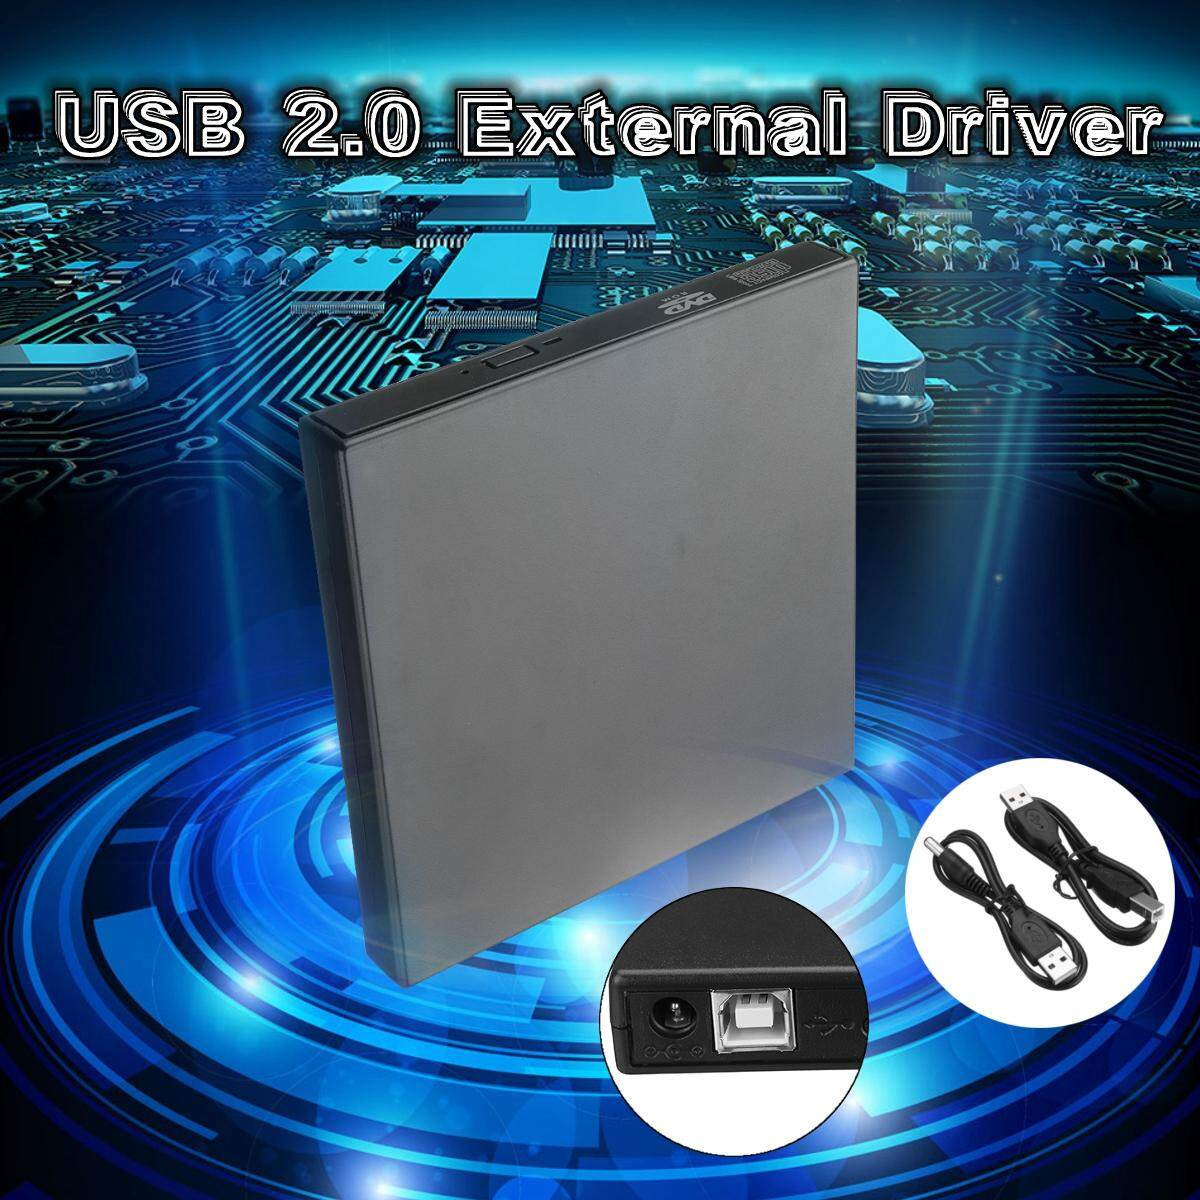 【Free Shipping + Flash Deal】External USB2.0 DVD RW CD Writer Slim Drive Burner Reader Player For PC Laptop